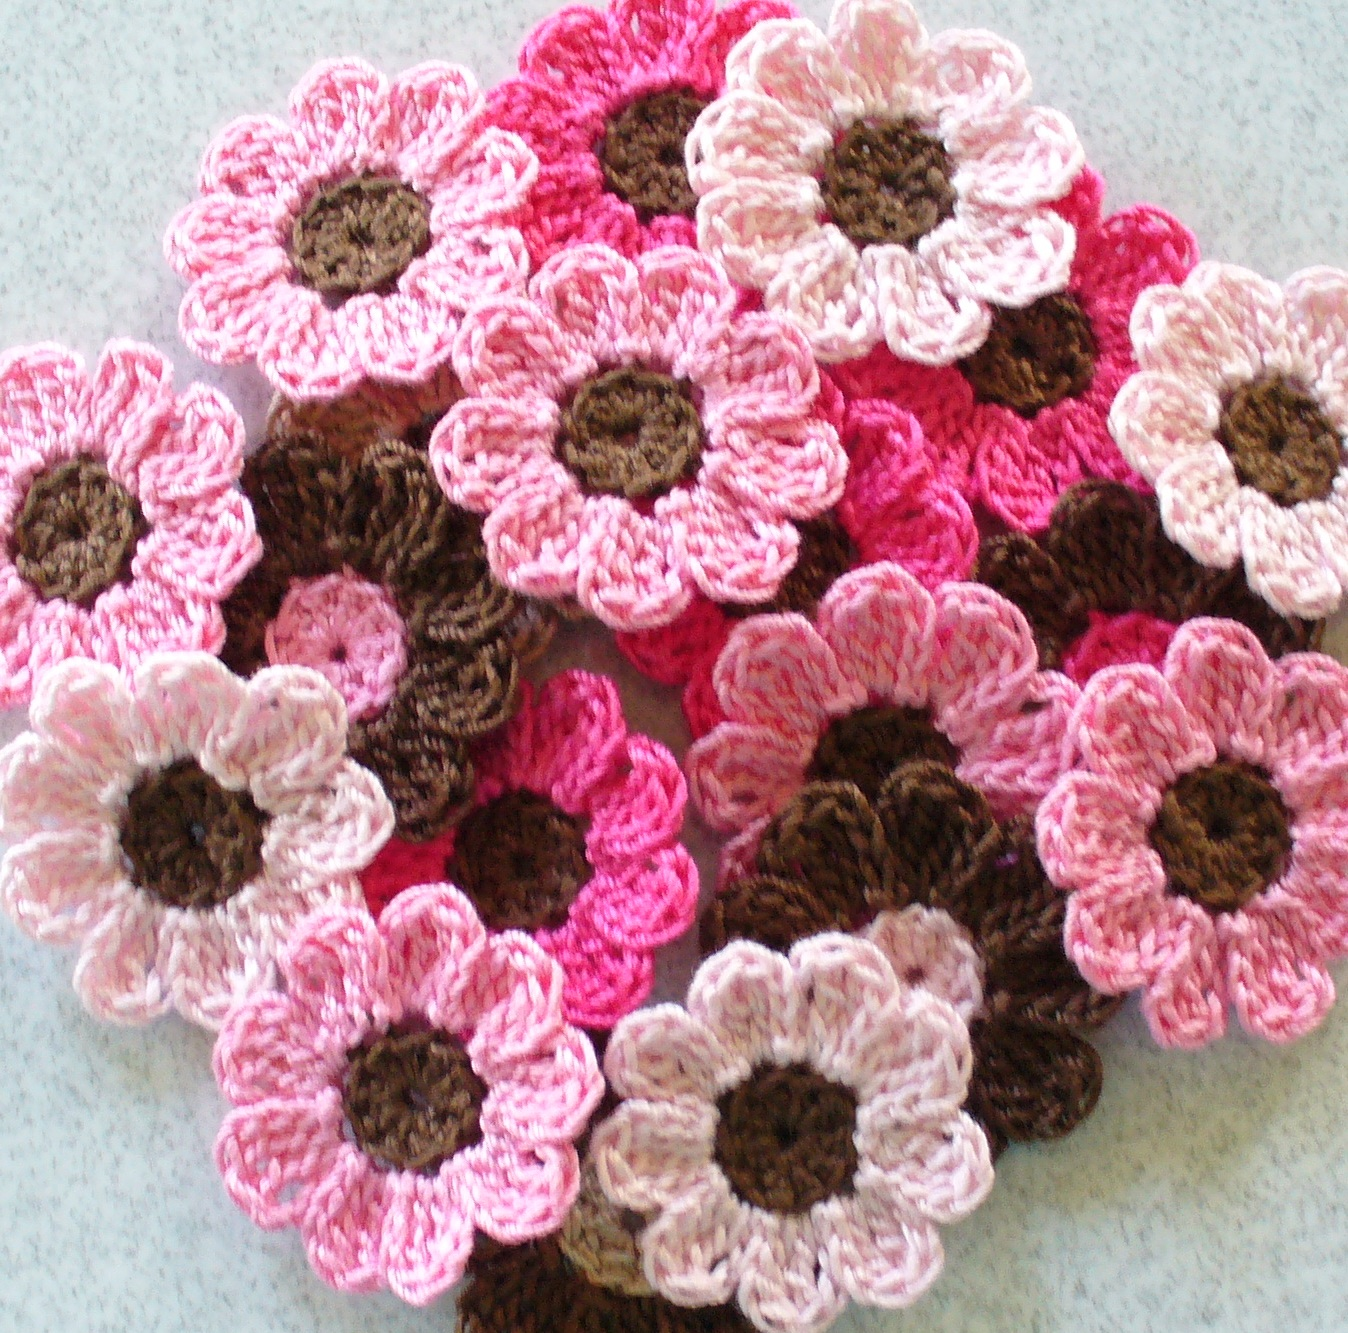 Handmade Crochet Flowers, Appliques, Embellishments, Pink, Brown ...